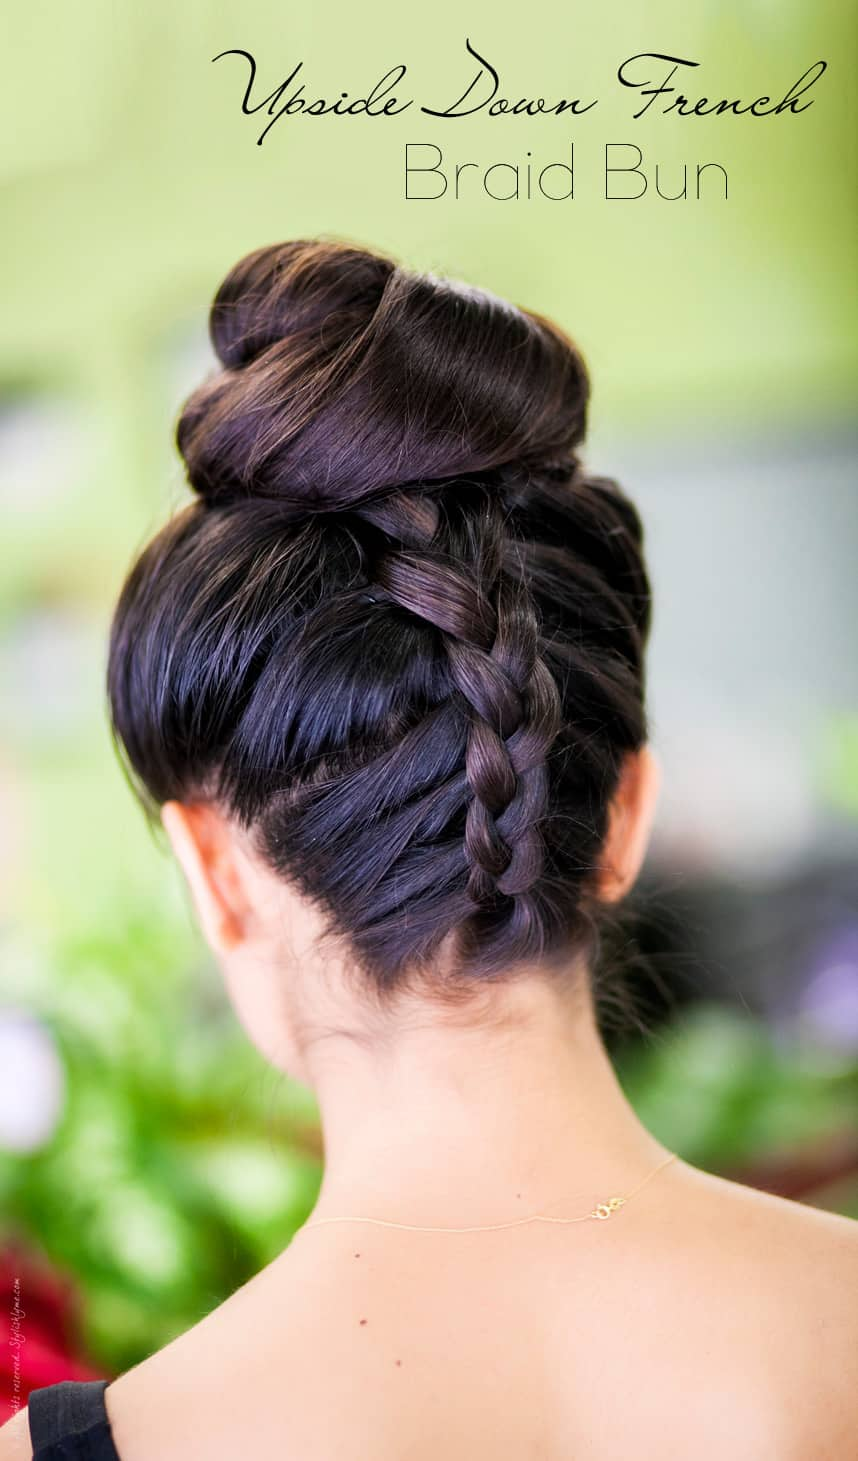 Upside down french braid bun tutorial